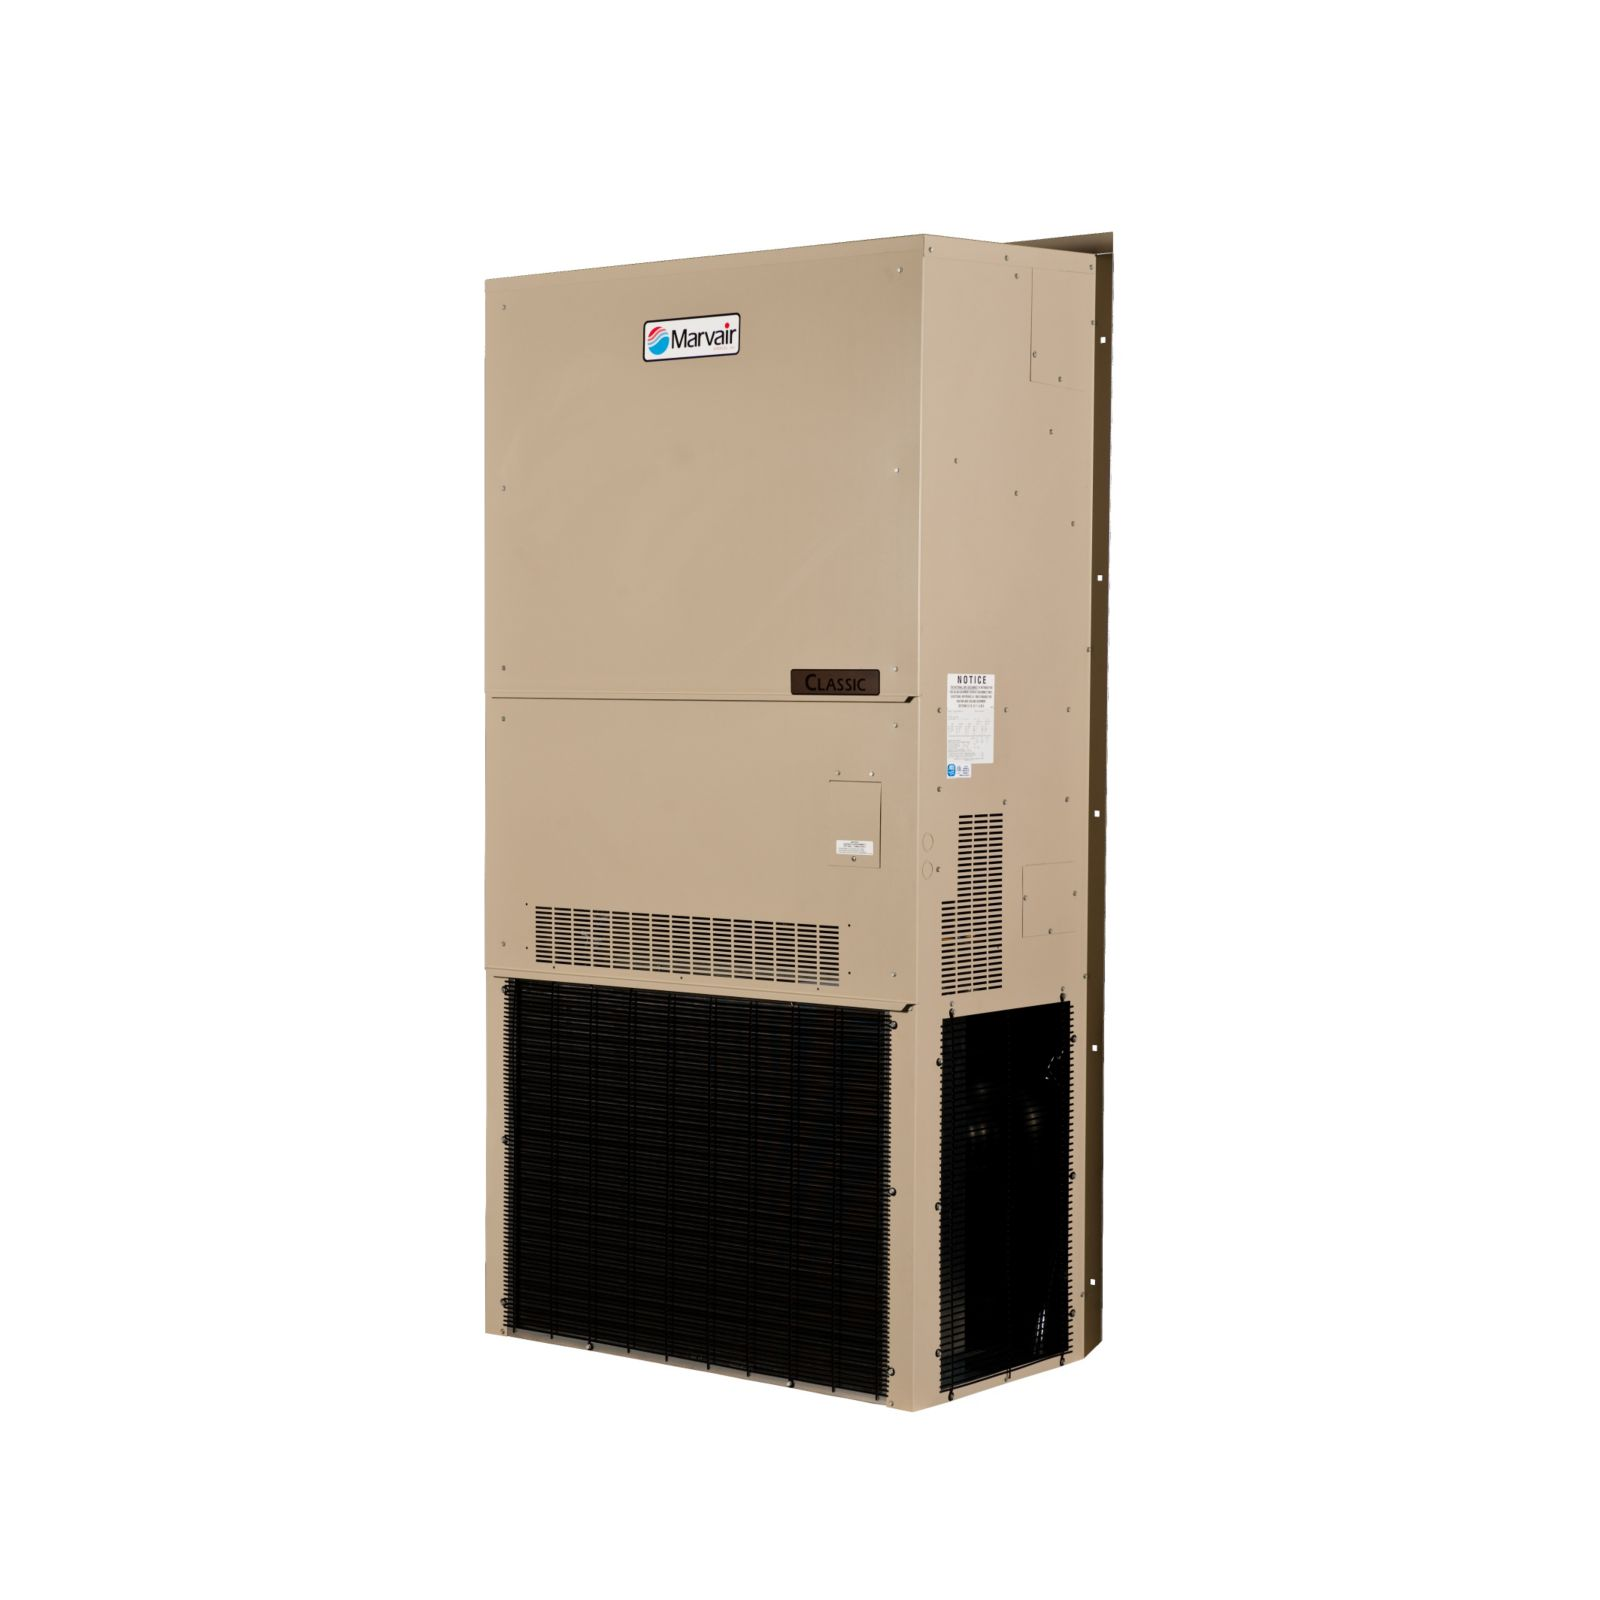 Marvair AVPA60ACD090NU-A2-100 - Wall Mount AC, ComPac I, 5 Ton, 460V/3, 9KW, Manual Damper, Scroll Compressor, R410A